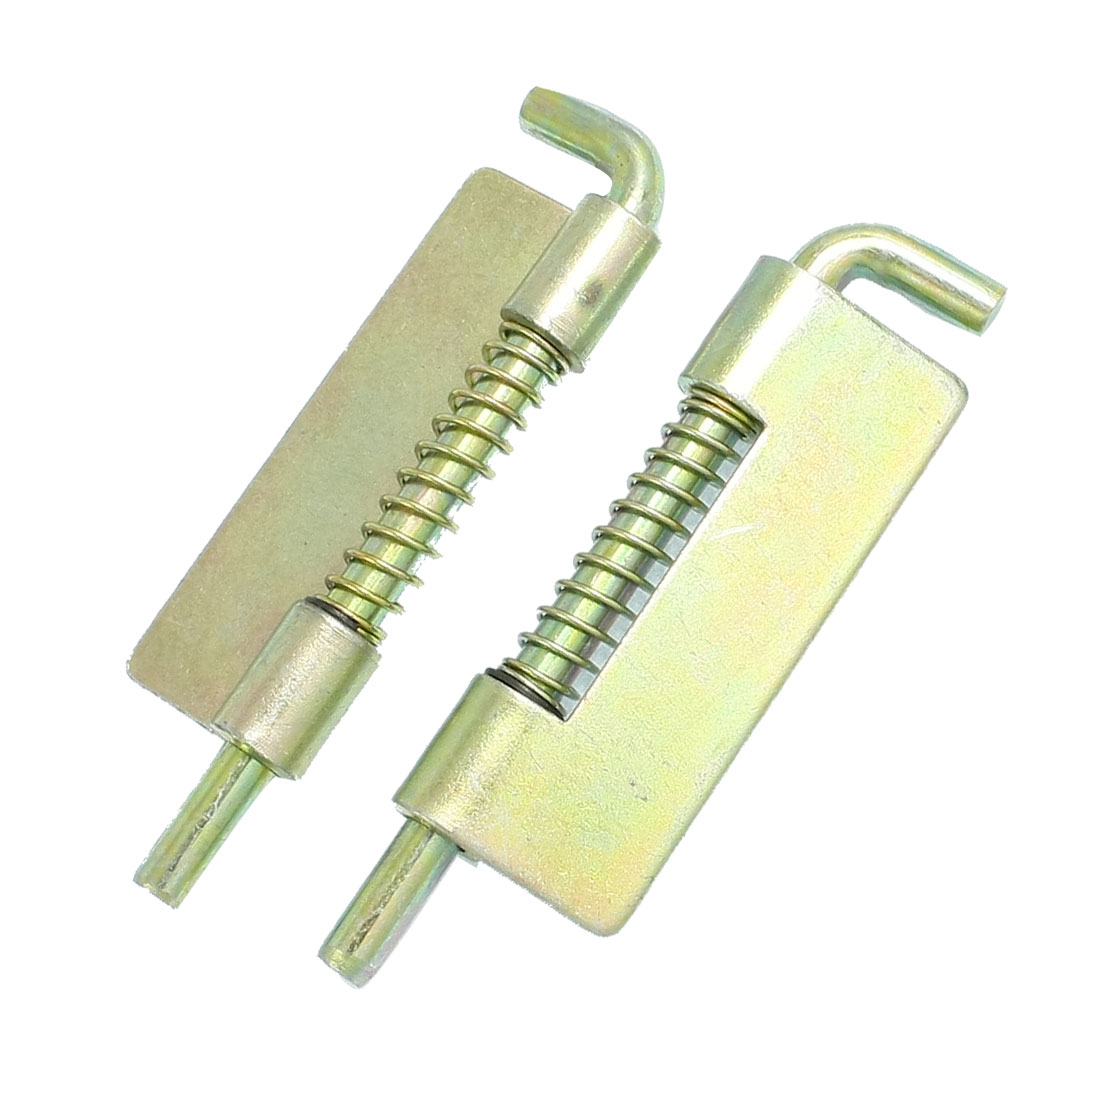 2 Pieces Single Lever Spring Loaded Door Latches Bolt